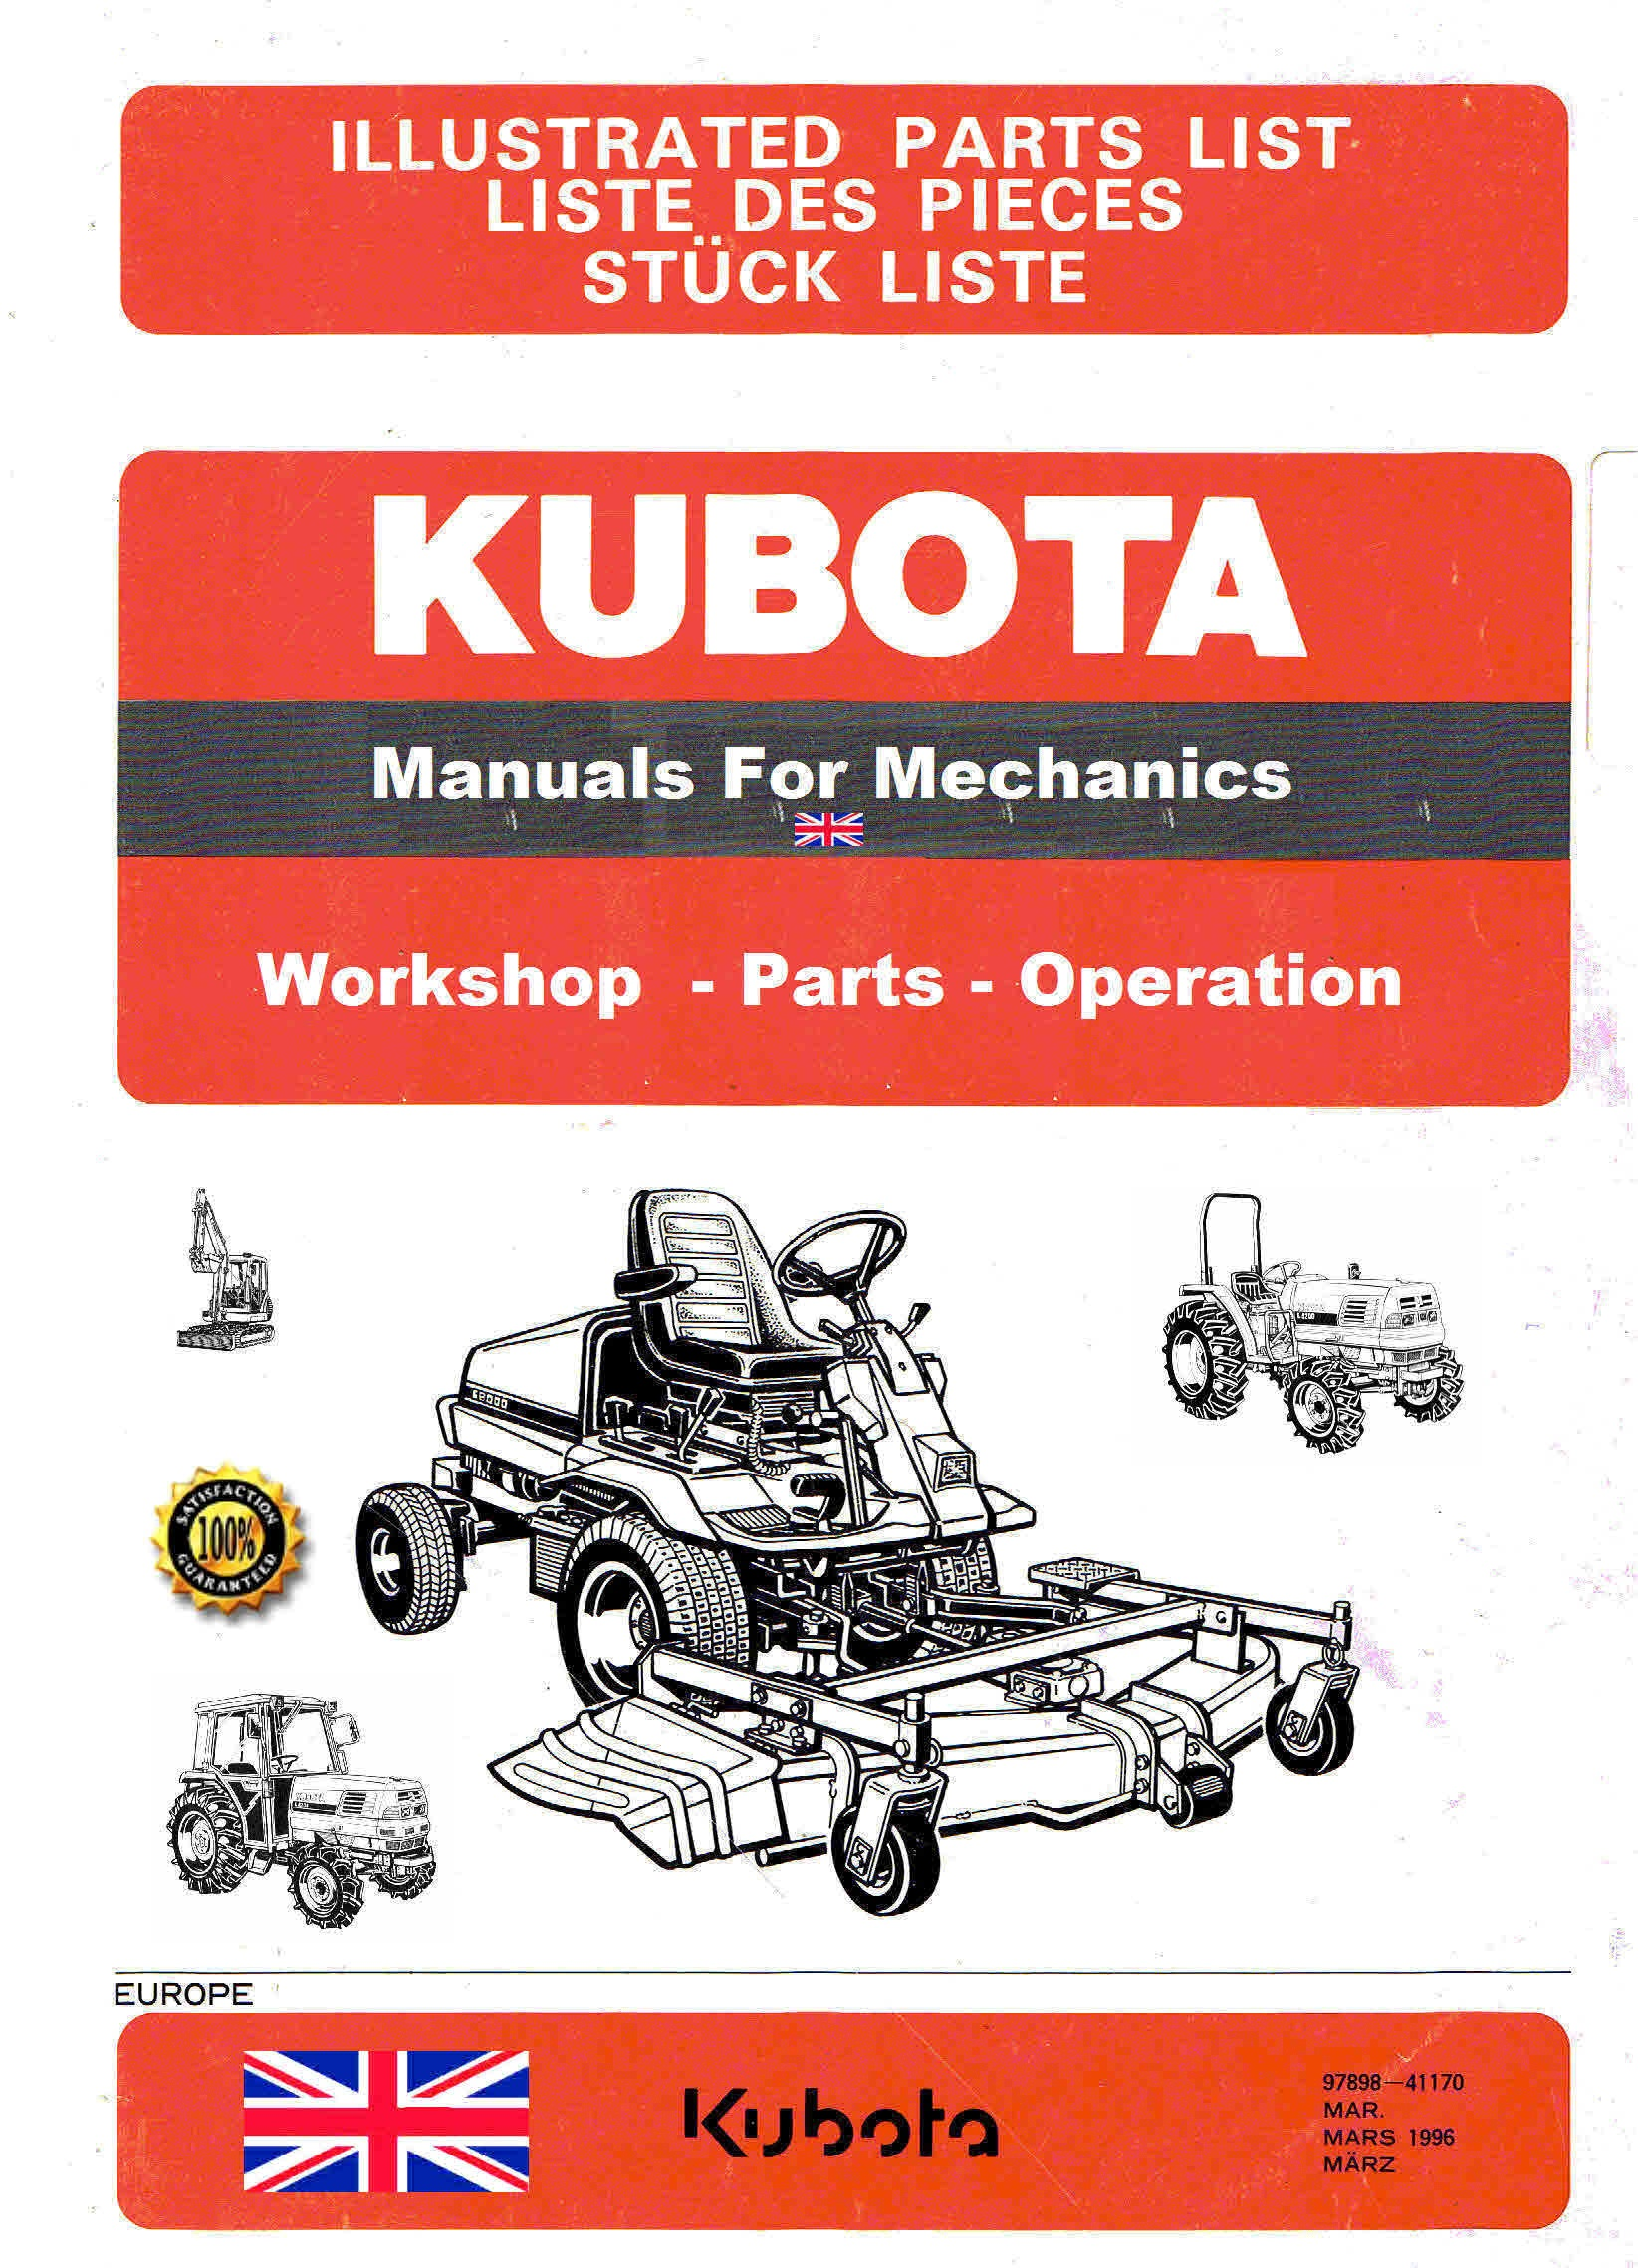 Kubota Manuals for Mechanics